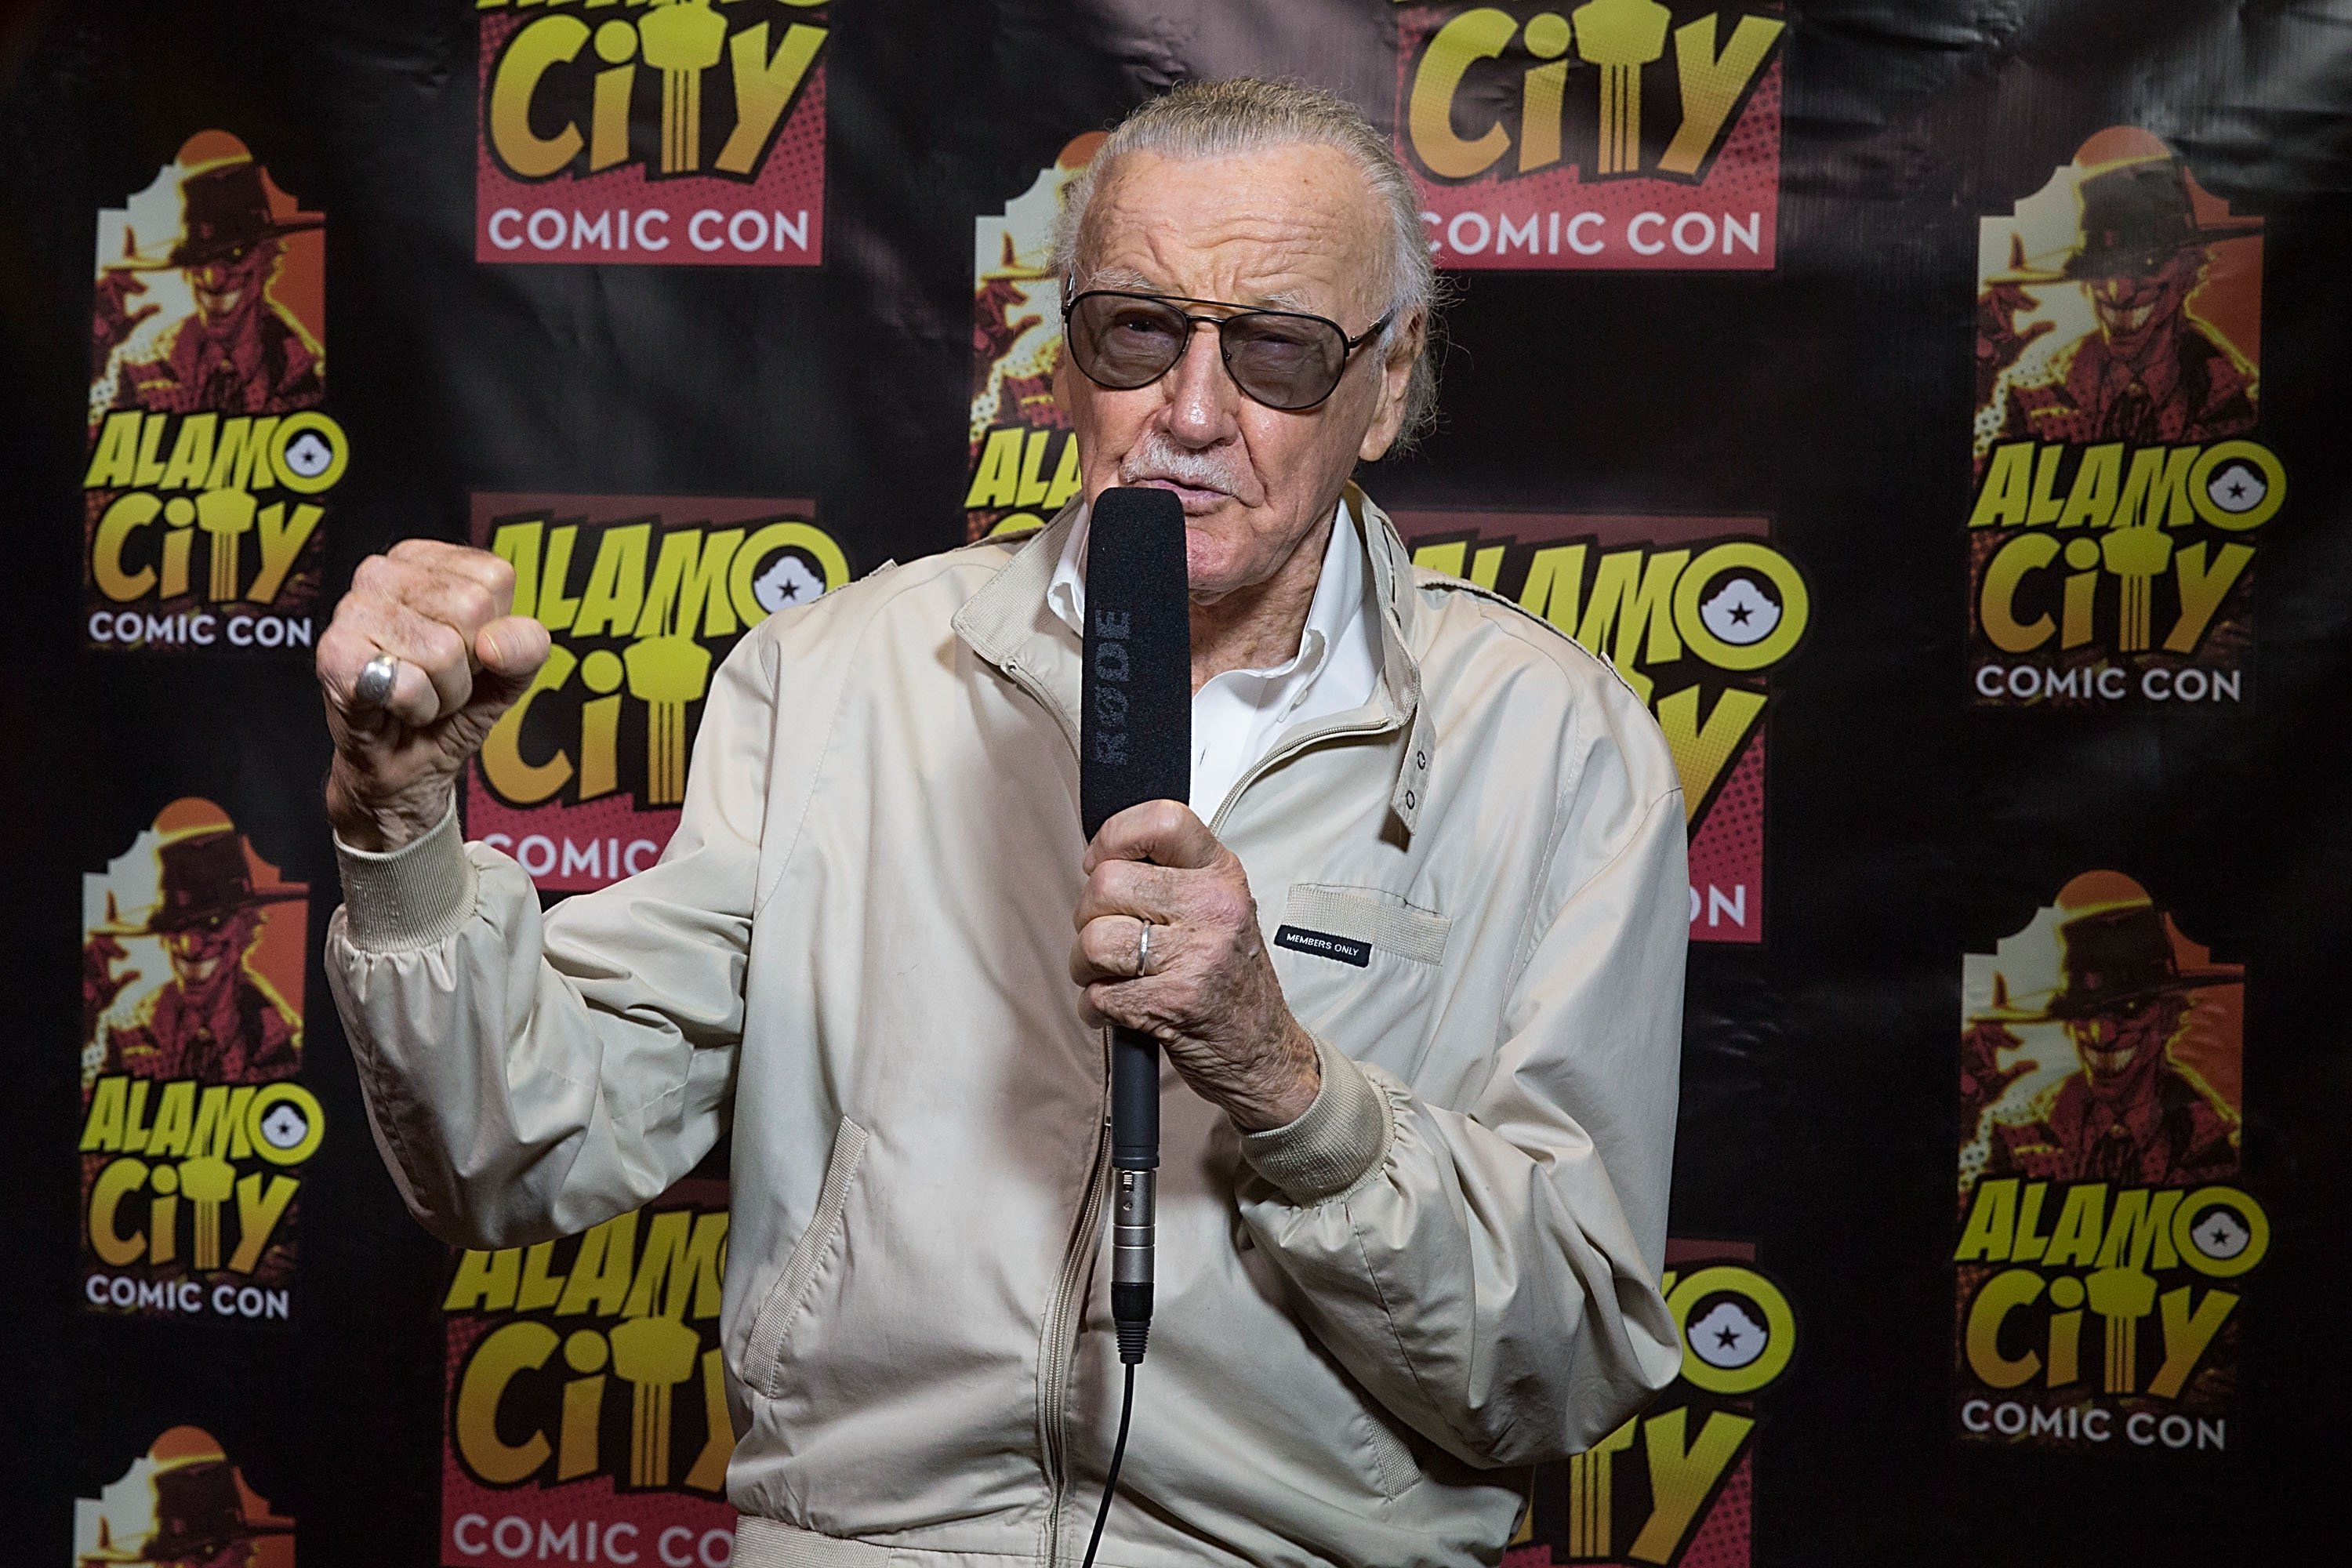 Comic book writer Stan Lee attends day one of the Alamo City Comic Con at the Henry B. Gonzalez Convention Center on September 26, 2014 in San Antonio, Texas.